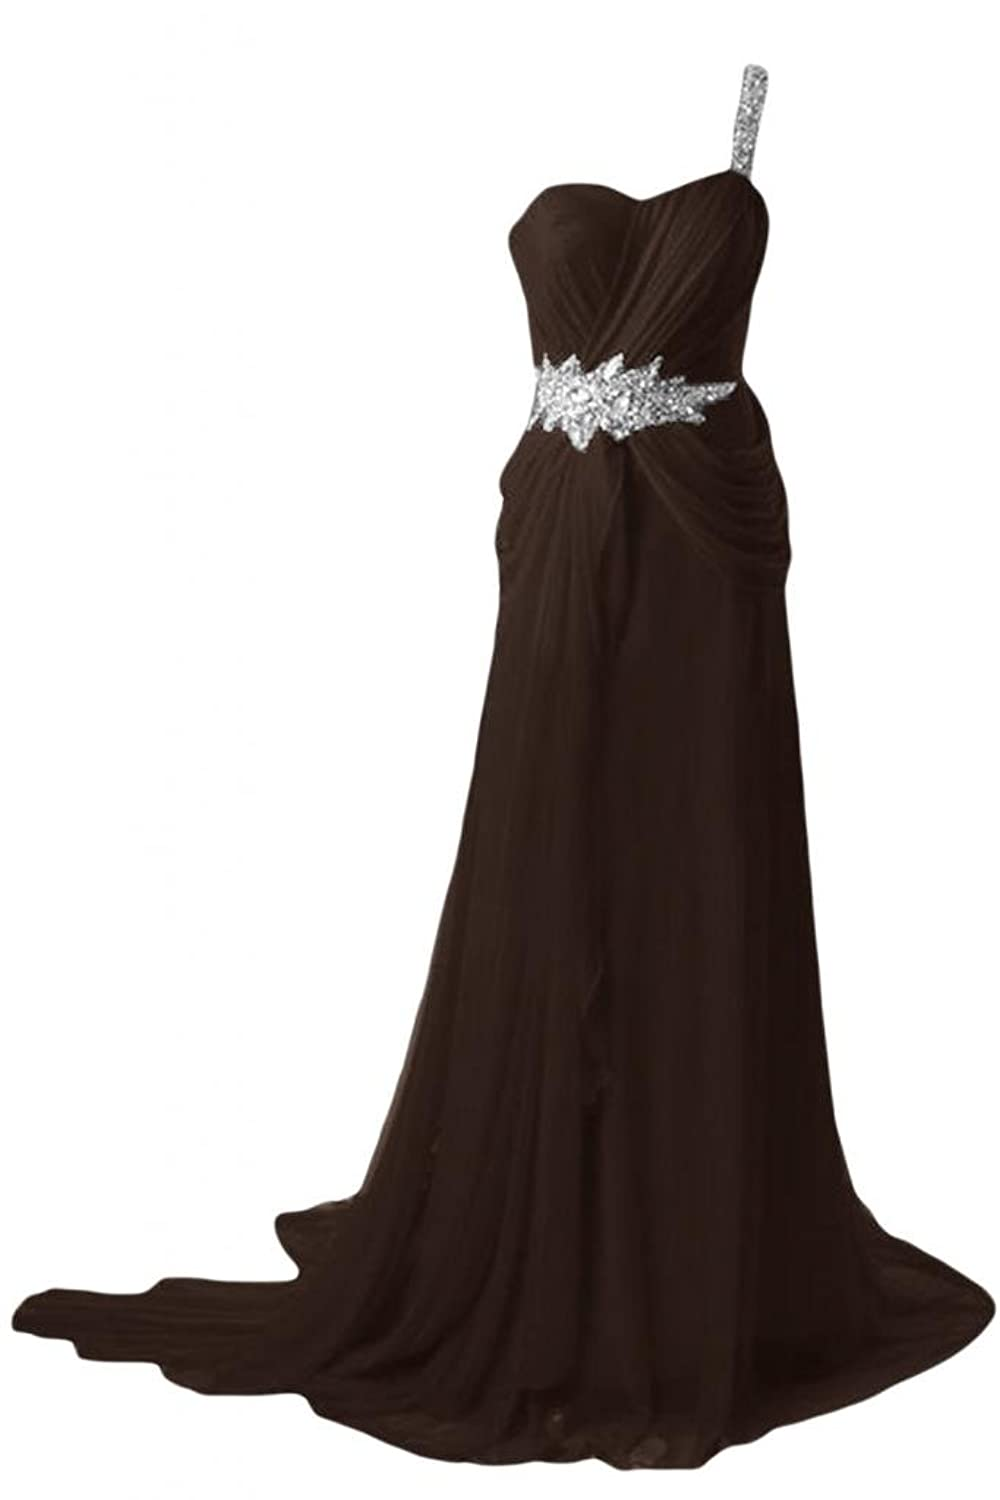 Sunvary Women Elegant A Line Chiffon Party Prom Gowns One-Shoulder long Evening Dresses